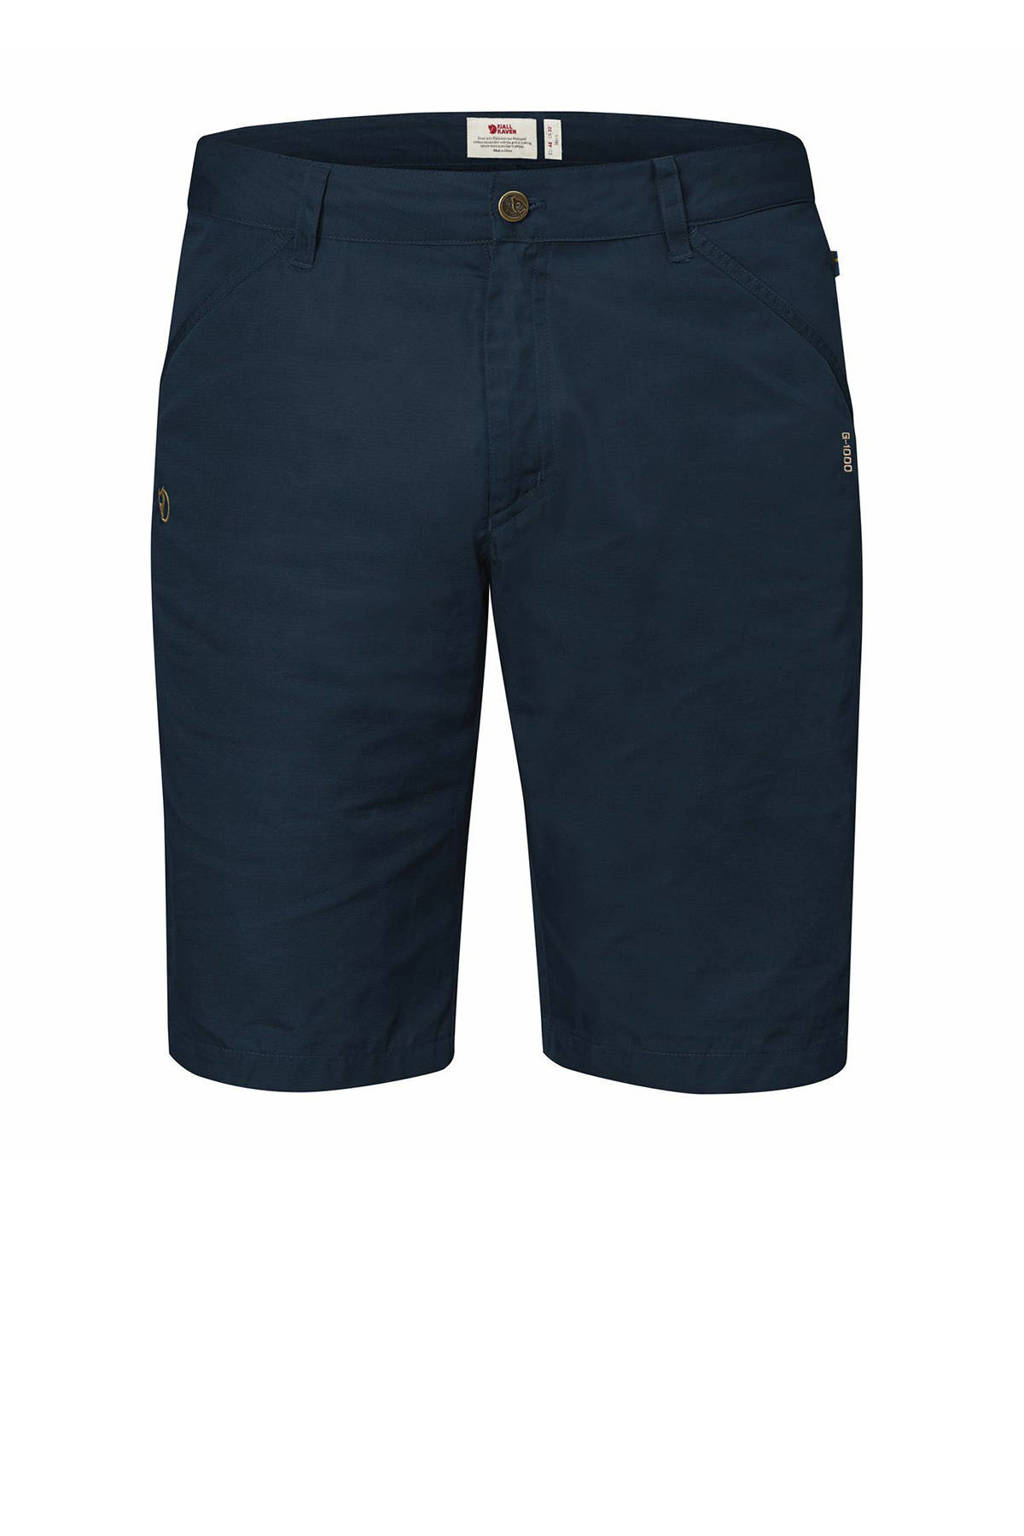 Fjällräven outdoor short High Coast donkerblauw, Donkerblauw